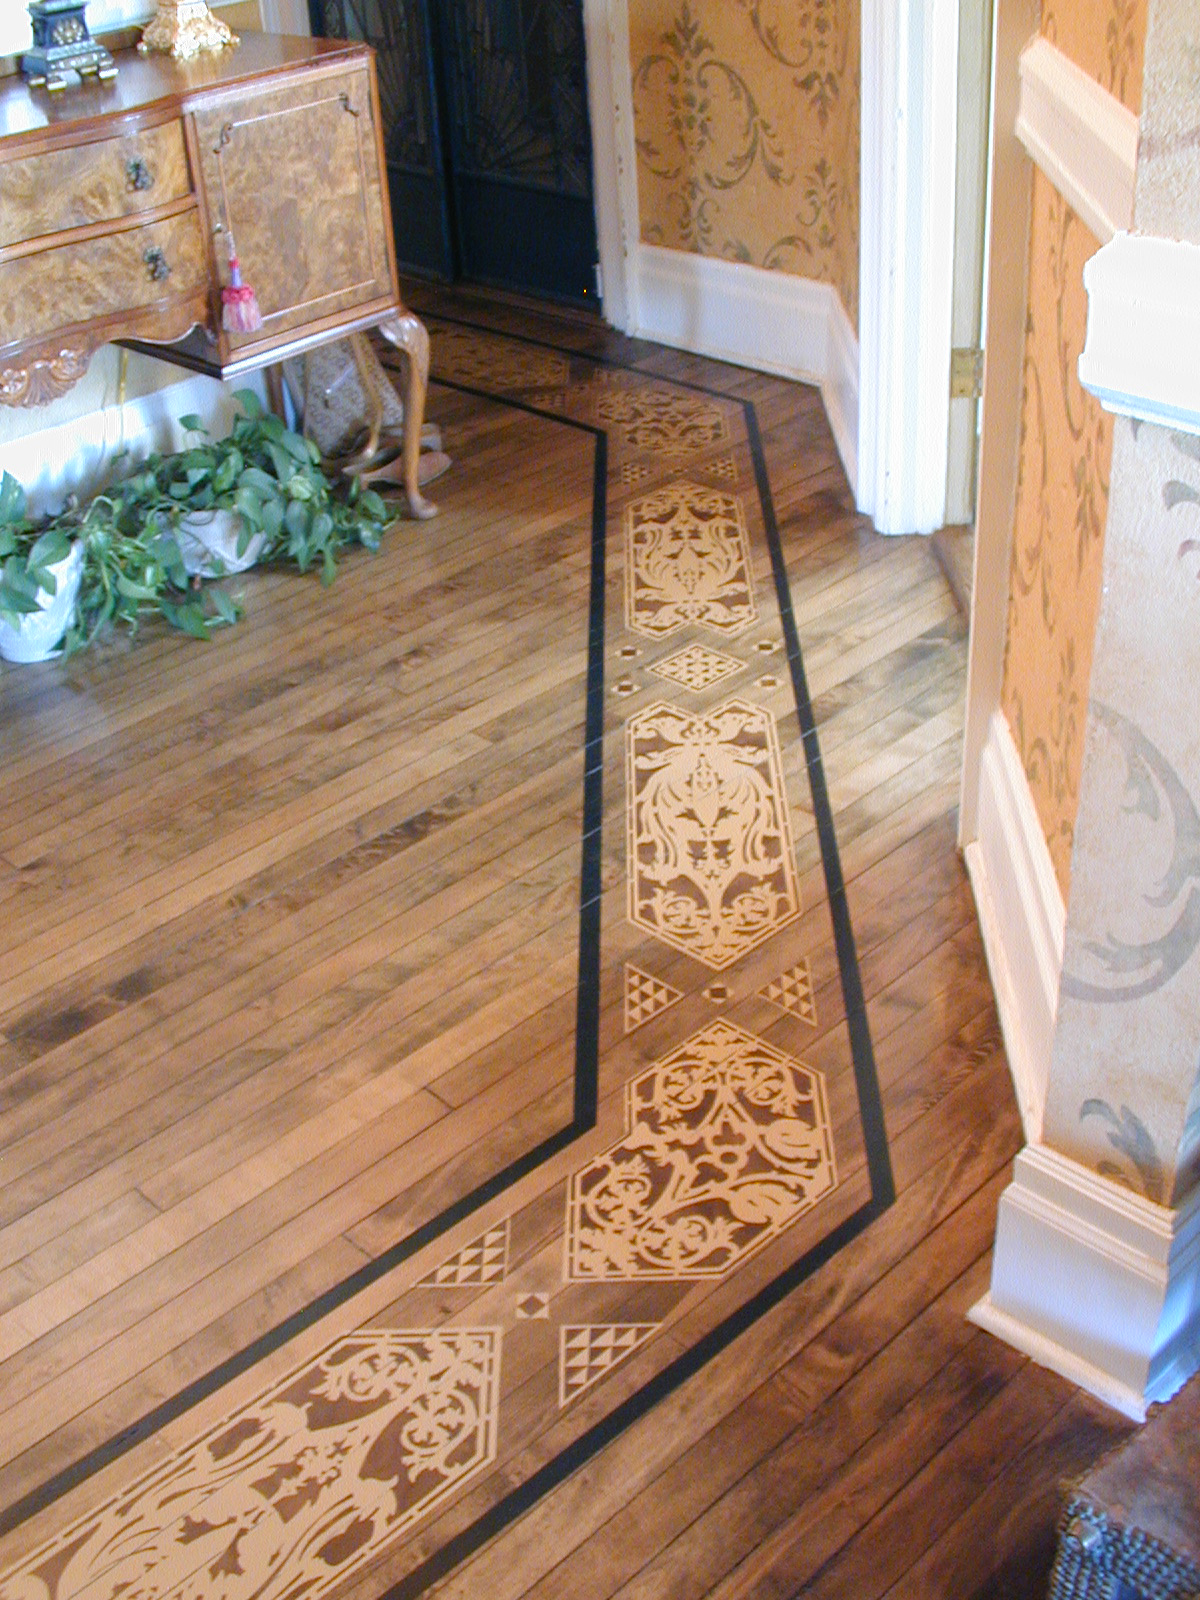 Stencilled floor and walls